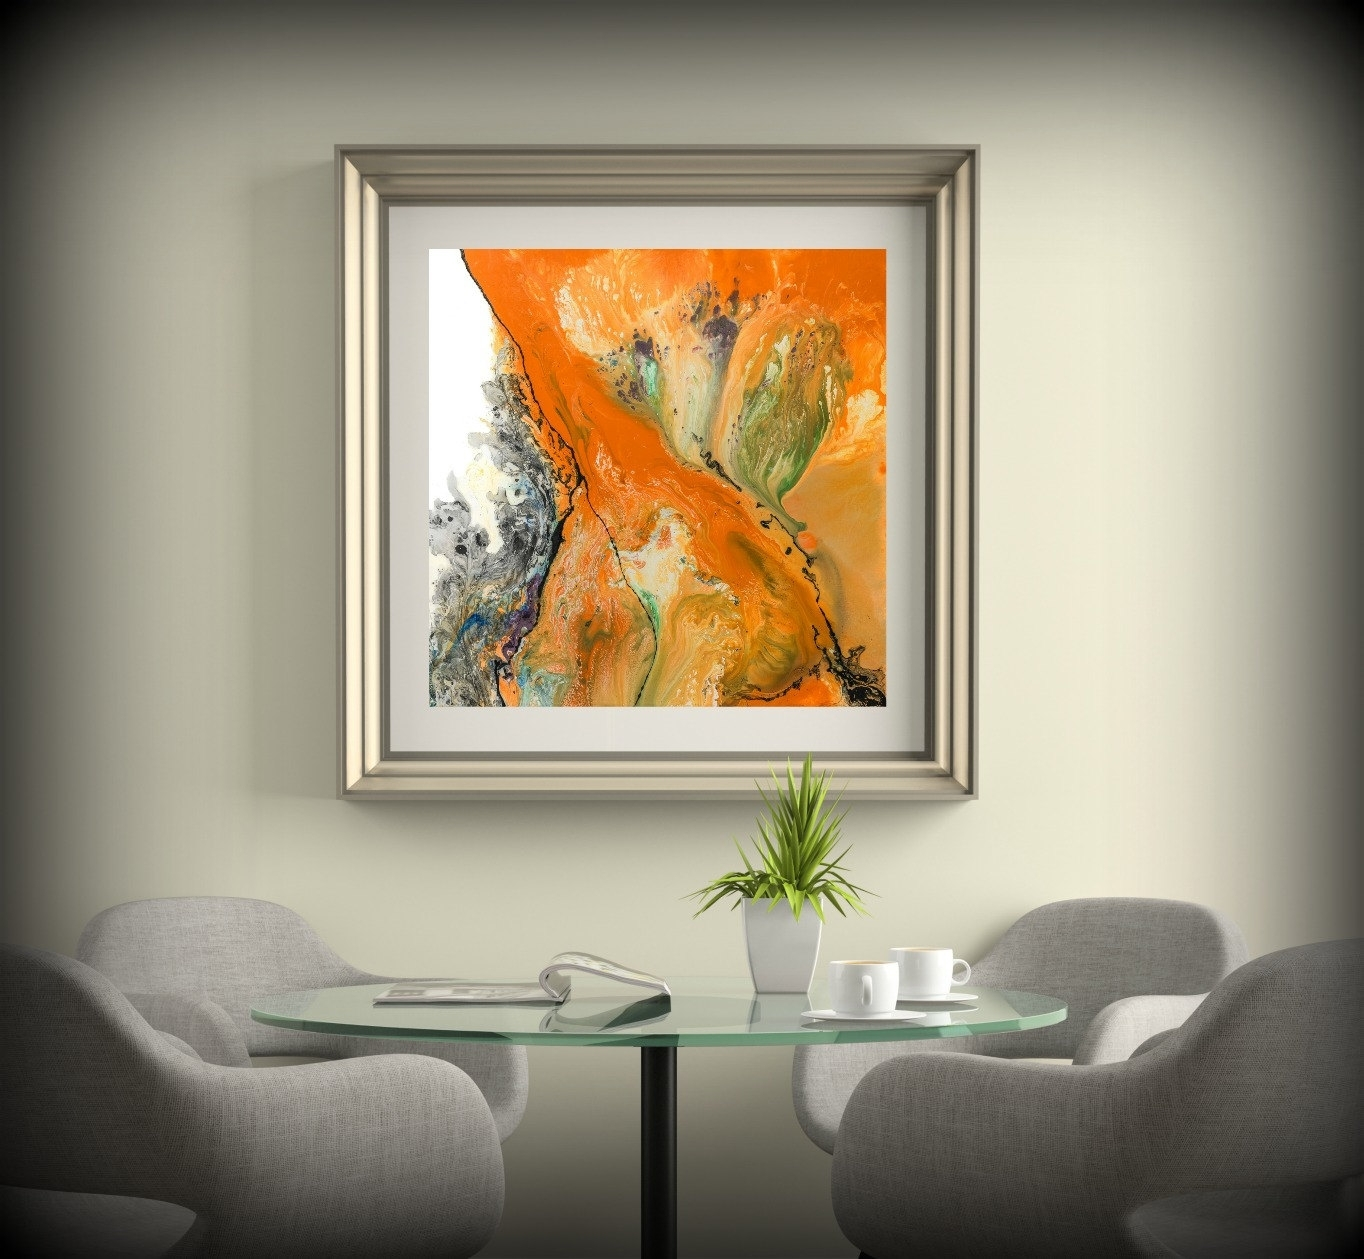 Living Room Decor Square Wall Decor Orange Wall Art Dining Room Within Most Popular Canvas Wall Art For Dining Room (Gallery 12 of 15)